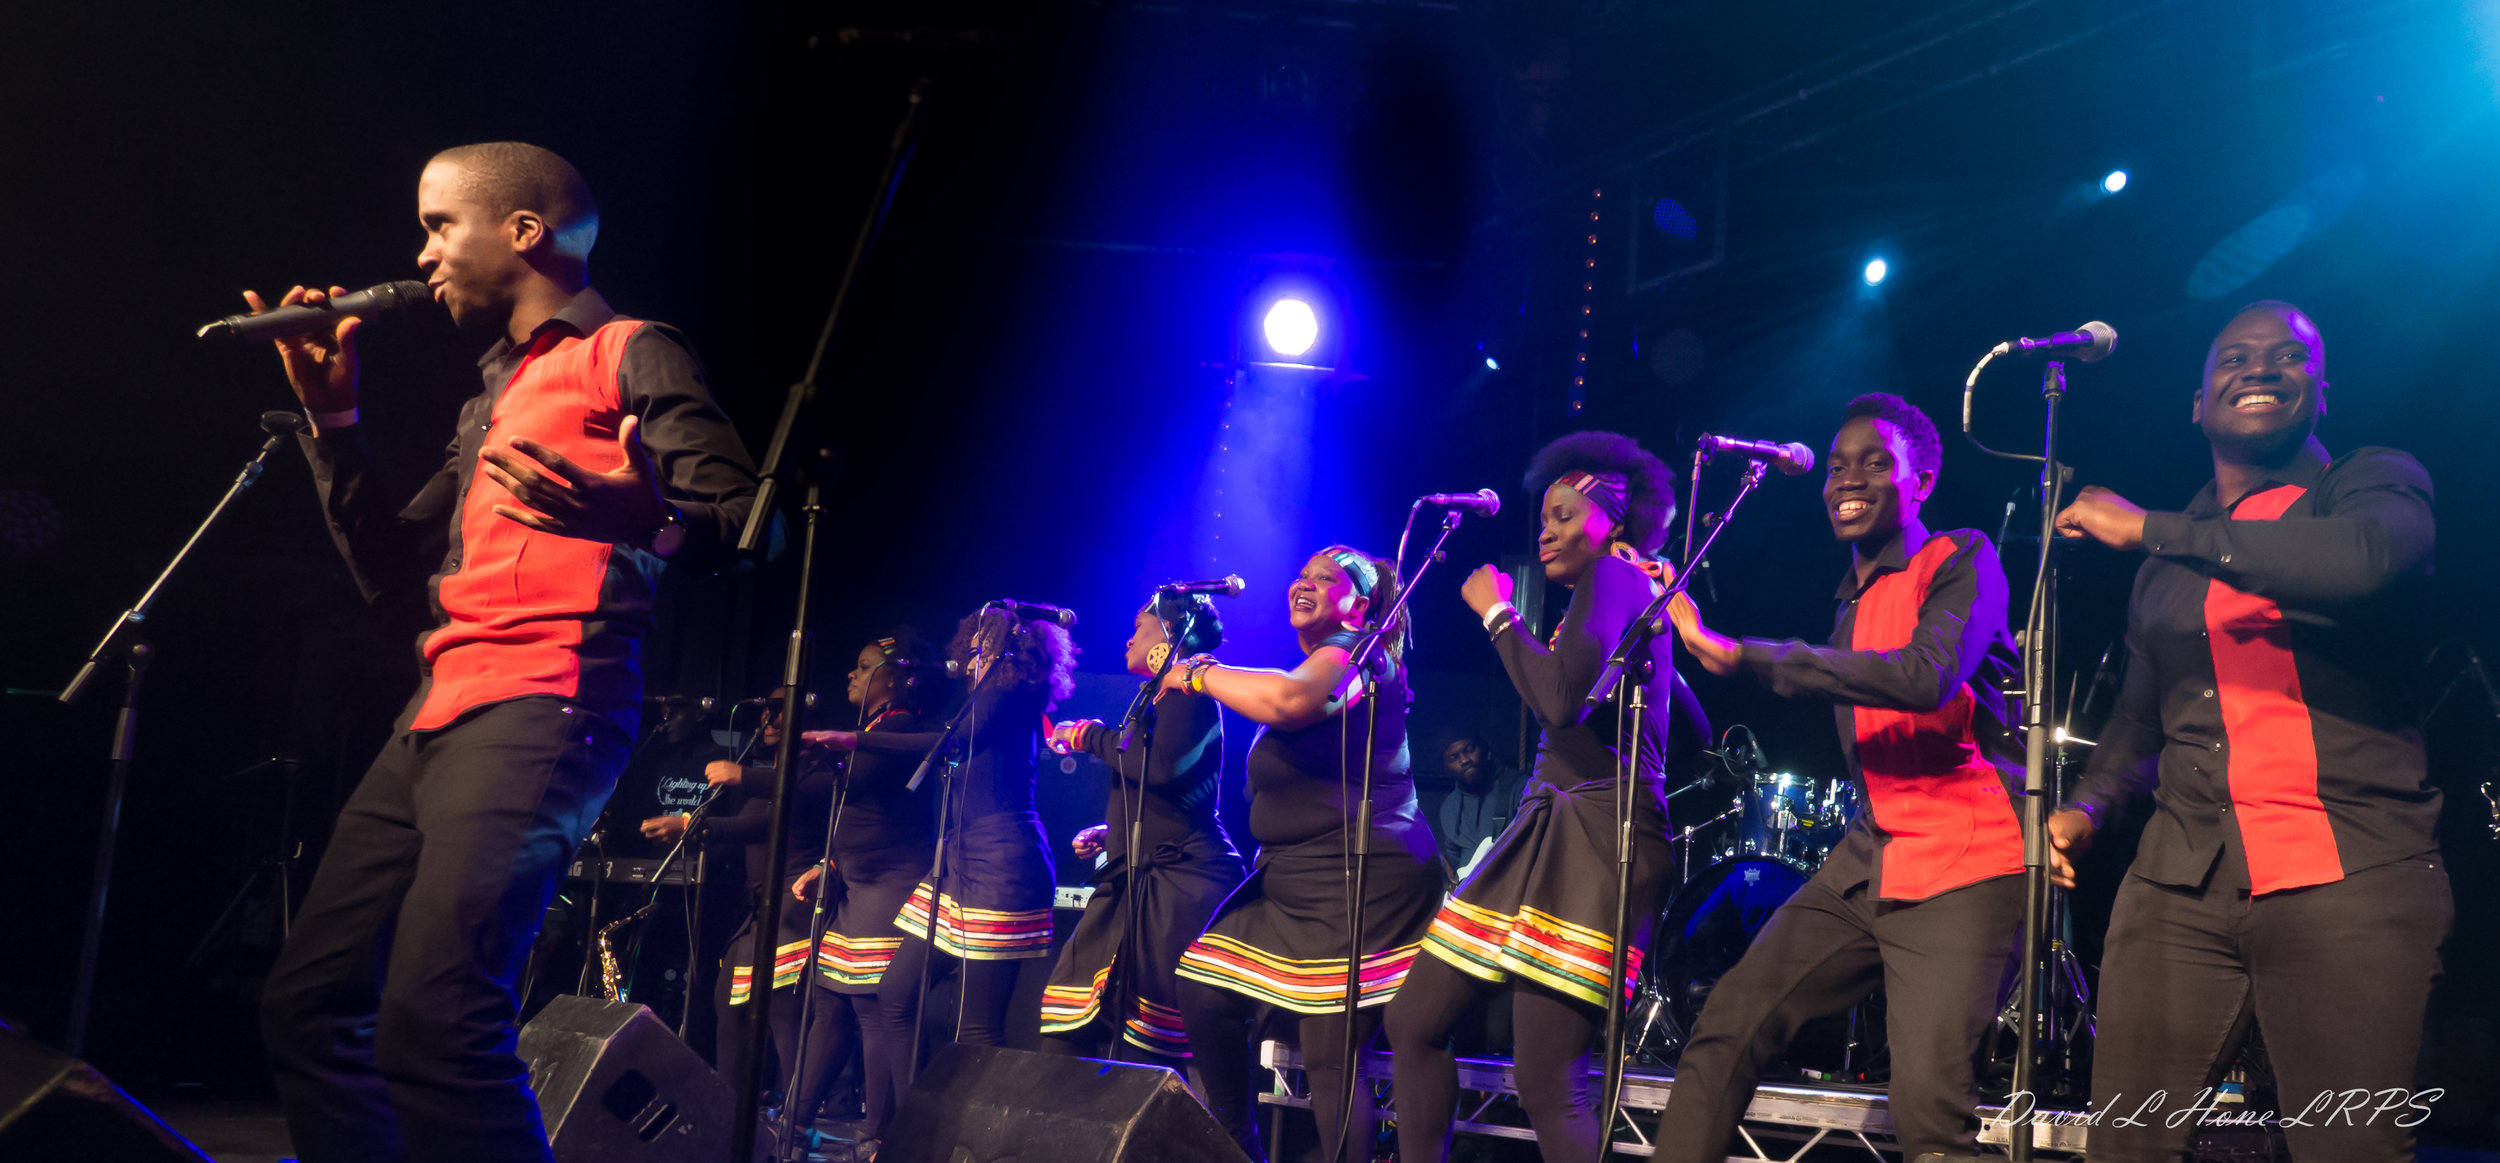 Soulful vocals from The London African Gospel Choir (above) and The London Lucumi Choir at a concert taking place during Black History Month.